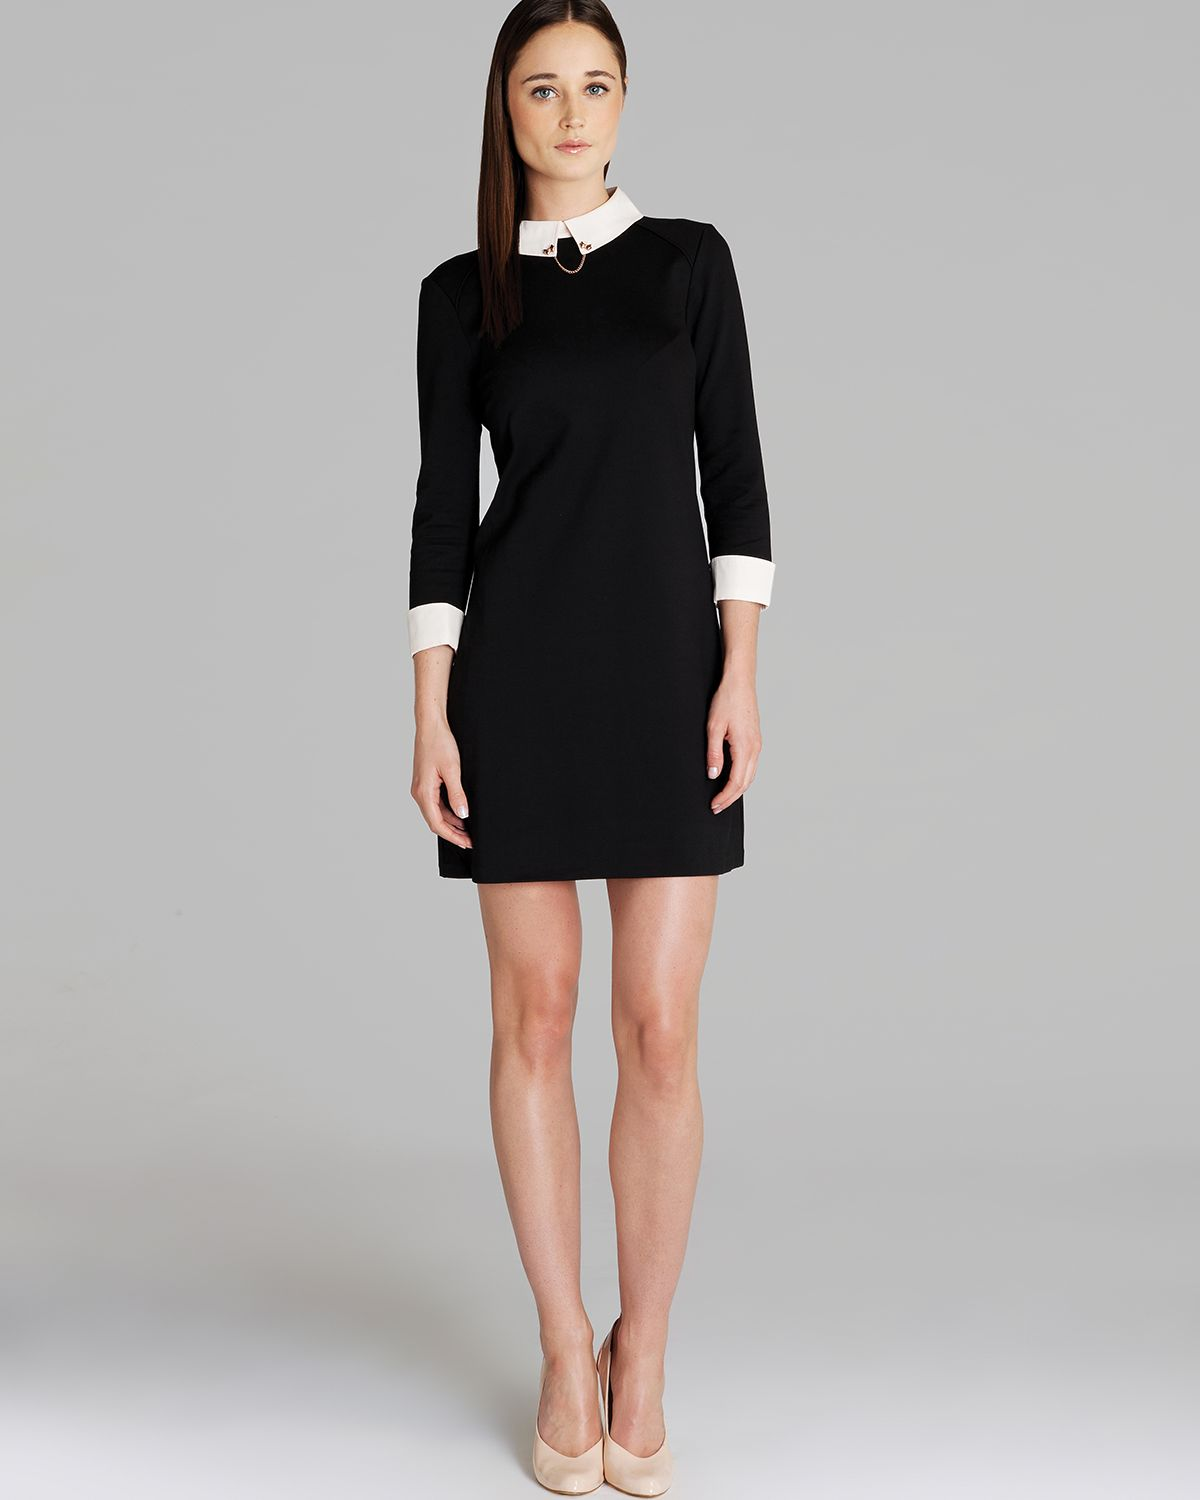 ted baker dress wubty contrast collar in black lyst. Black Bedroom Furniture Sets. Home Design Ideas